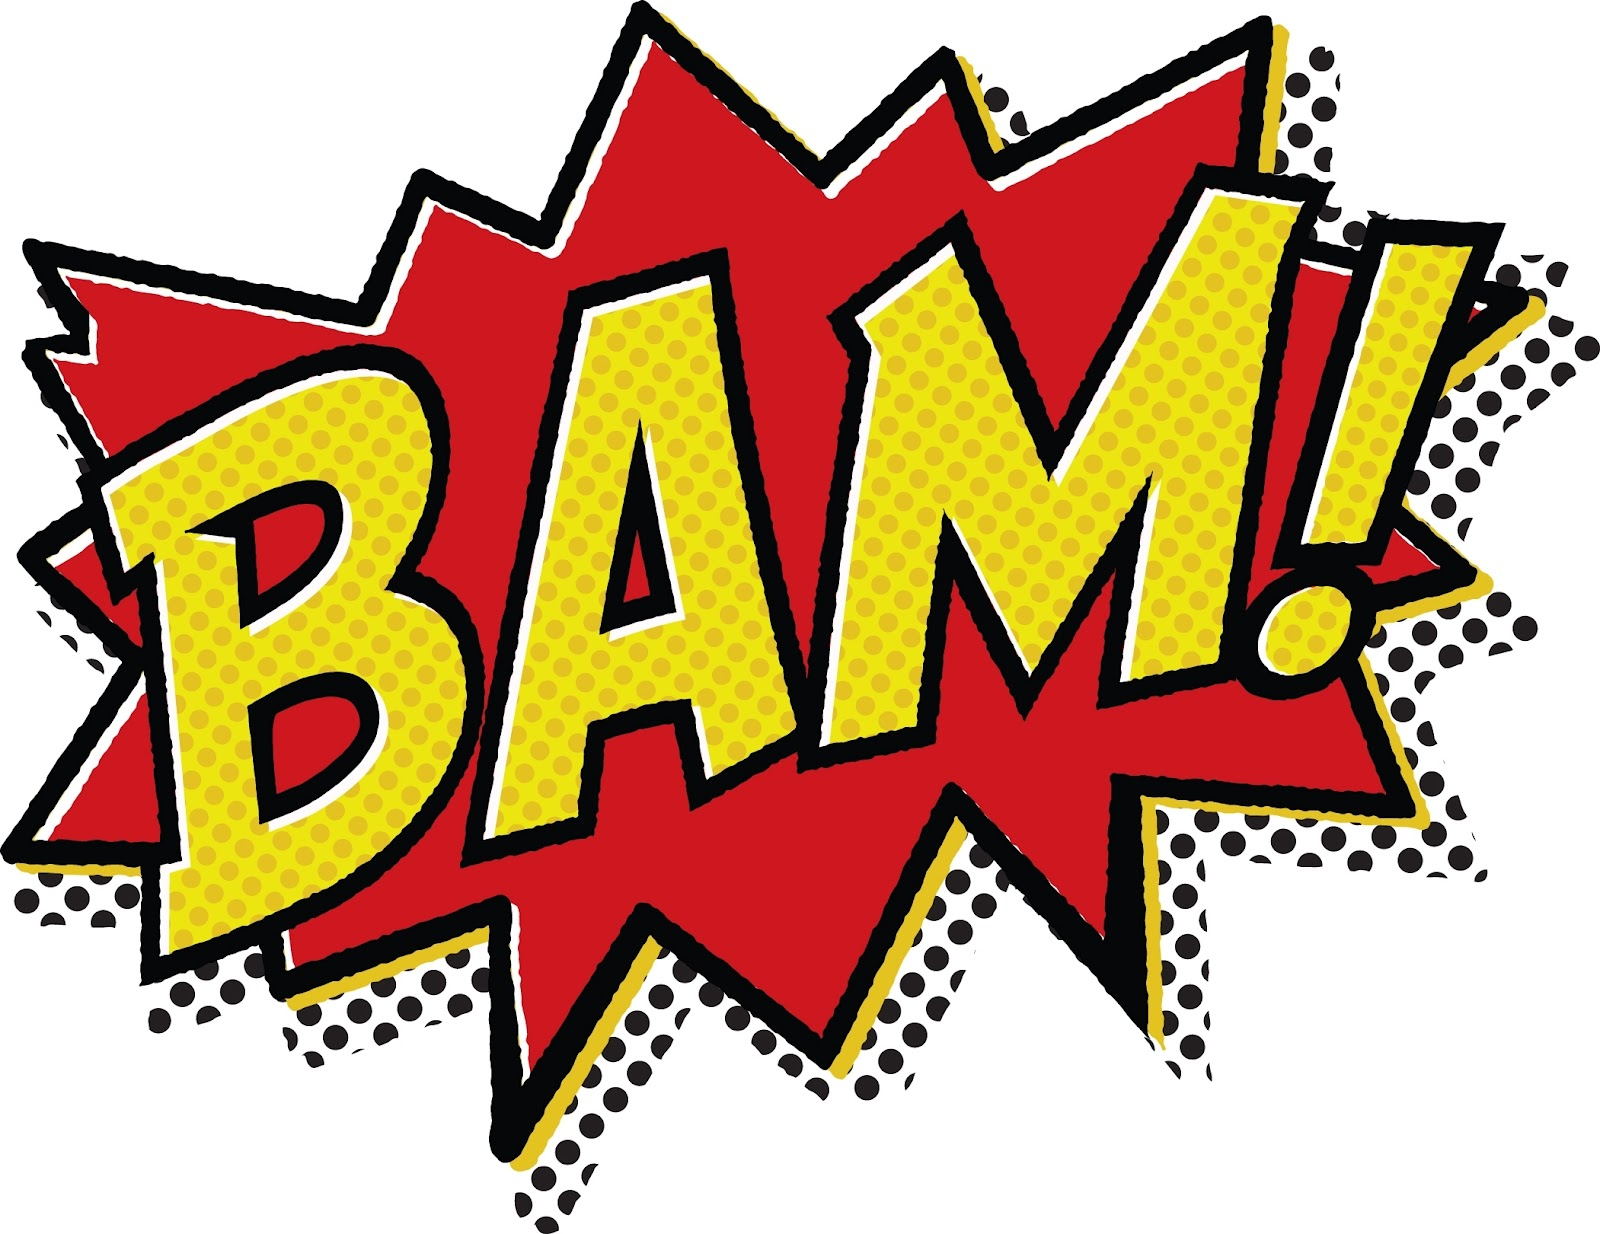 13 Batman Pow Bam Graphics Free Cliparts That You Can Download To You